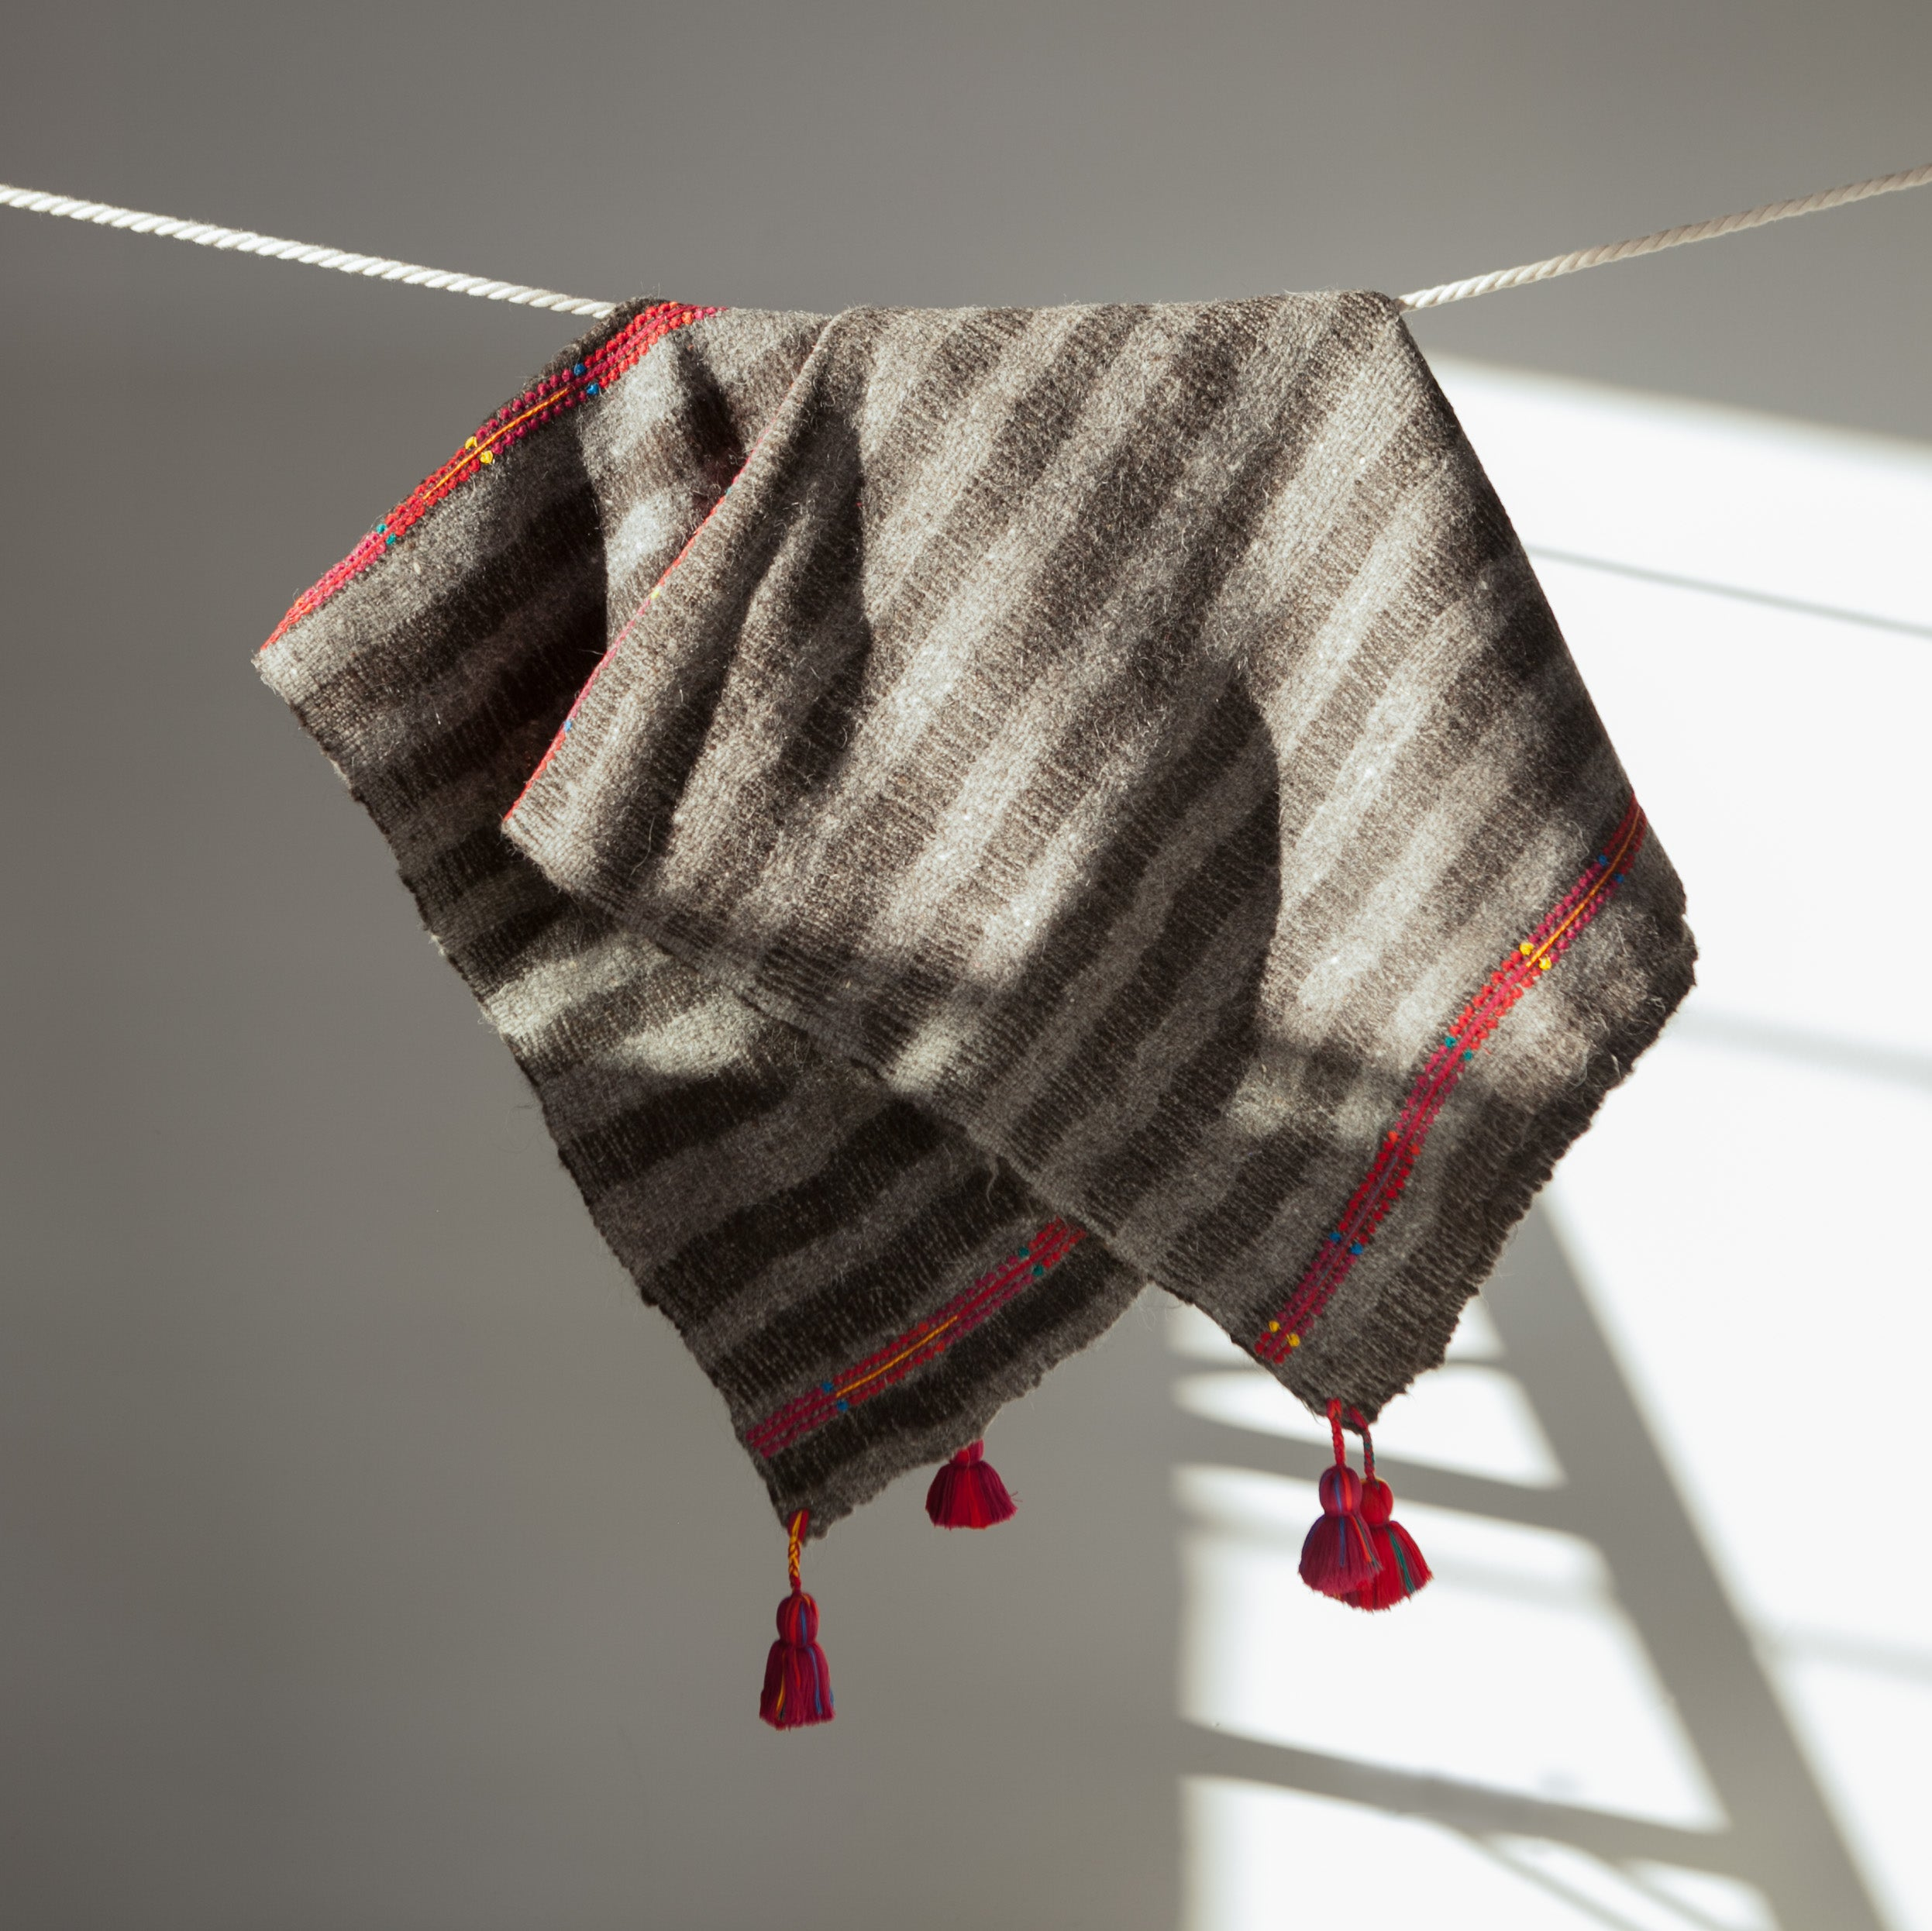 Handwoven wool throw with red tassels black and grey stripes